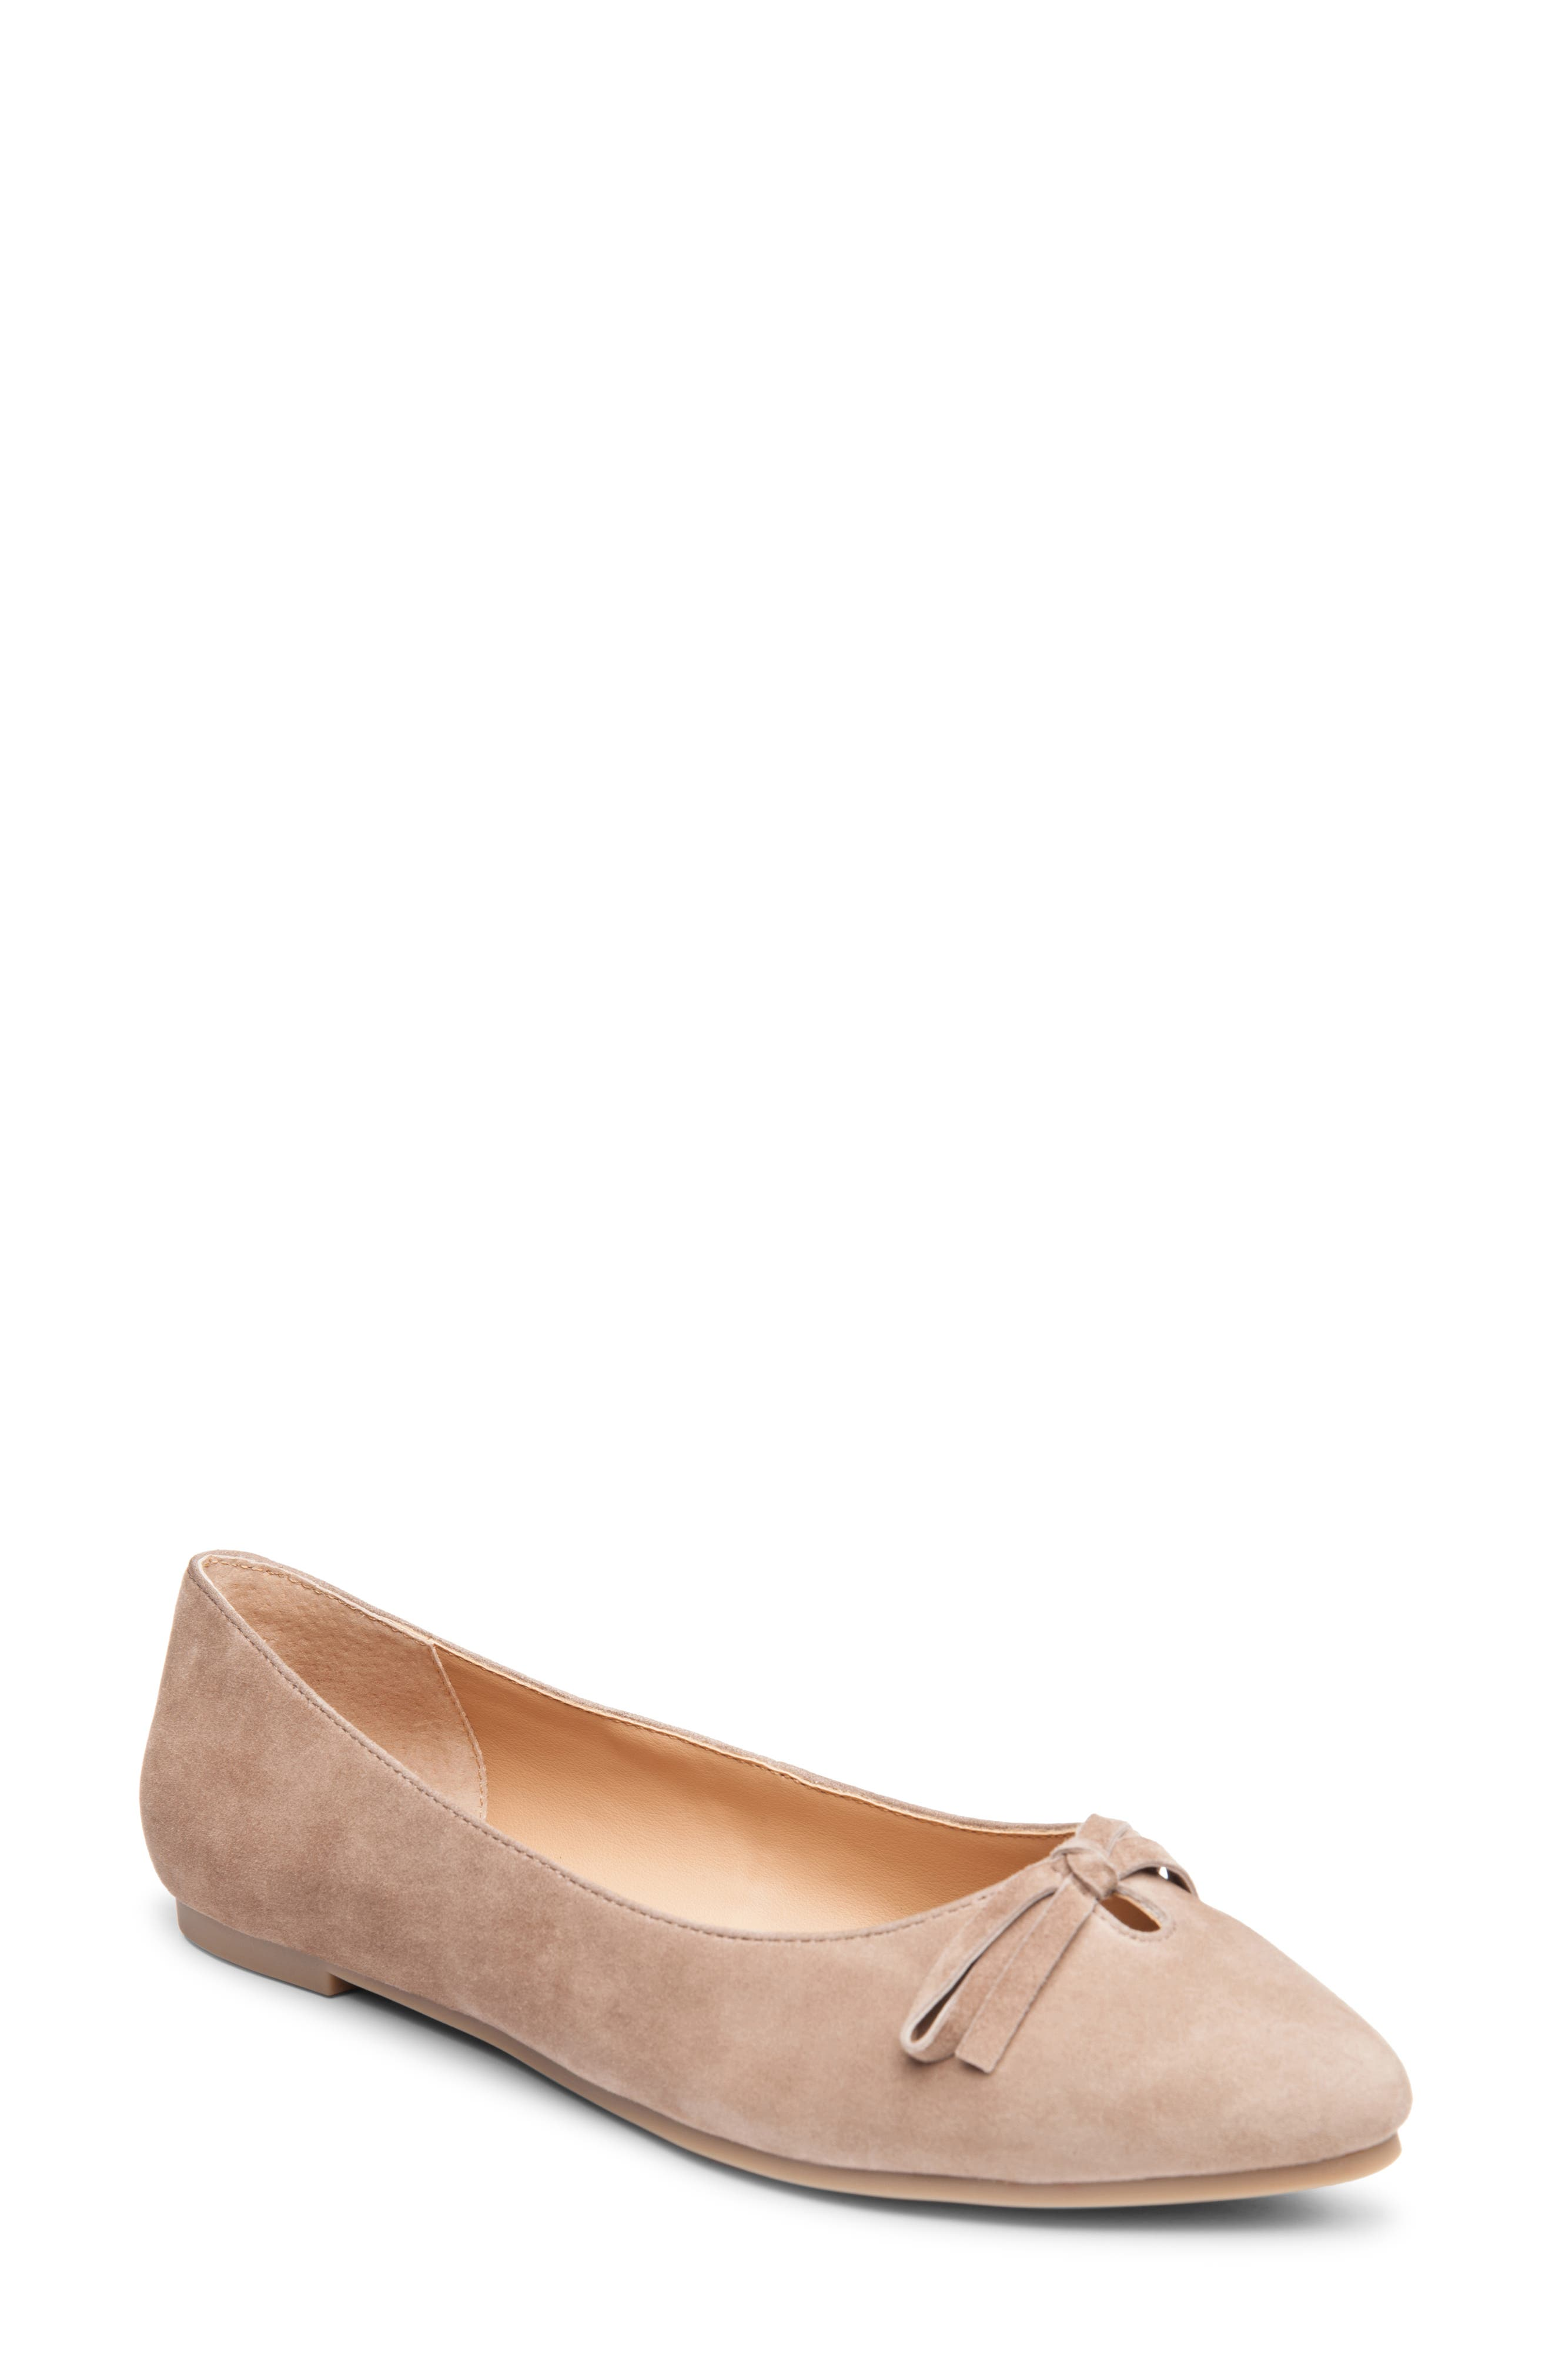 Women's Me Too Pointed Toe Flats